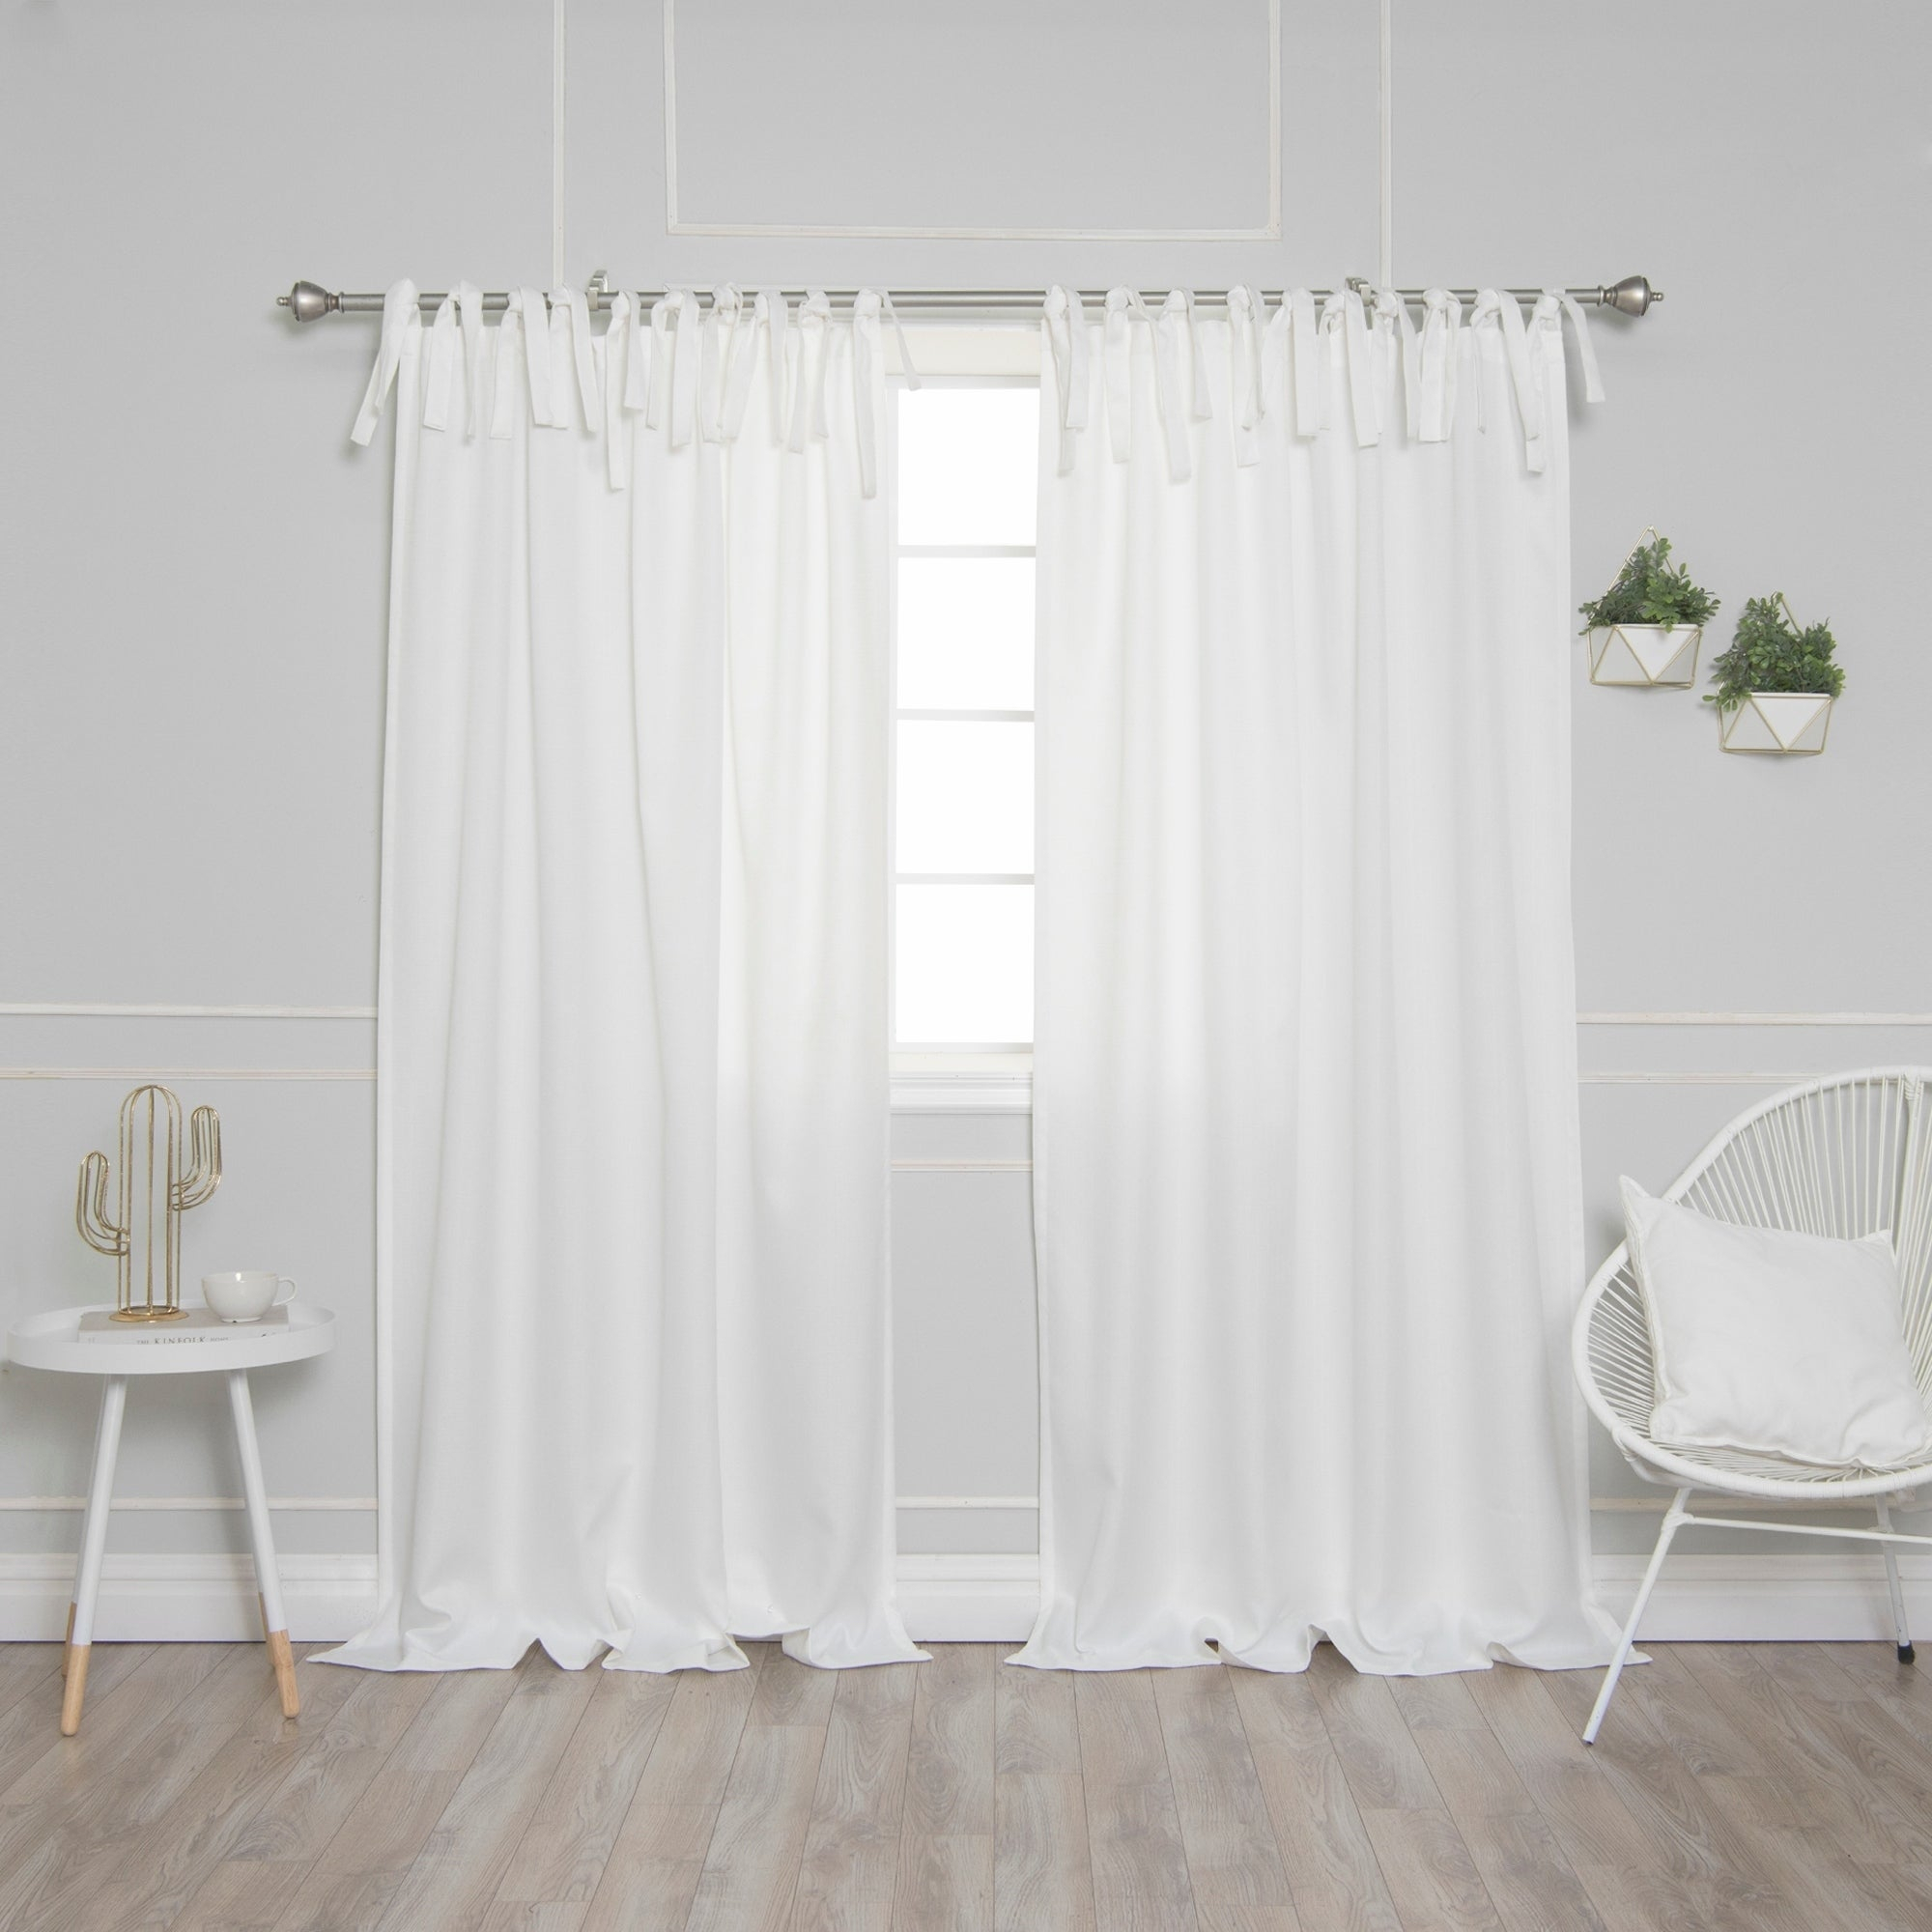 Aurora Home Tie Top Oxford Curtain Panel Pair Pertaining To Elrene Jolie Tie Top Curtain Panels (View 11 of 20)